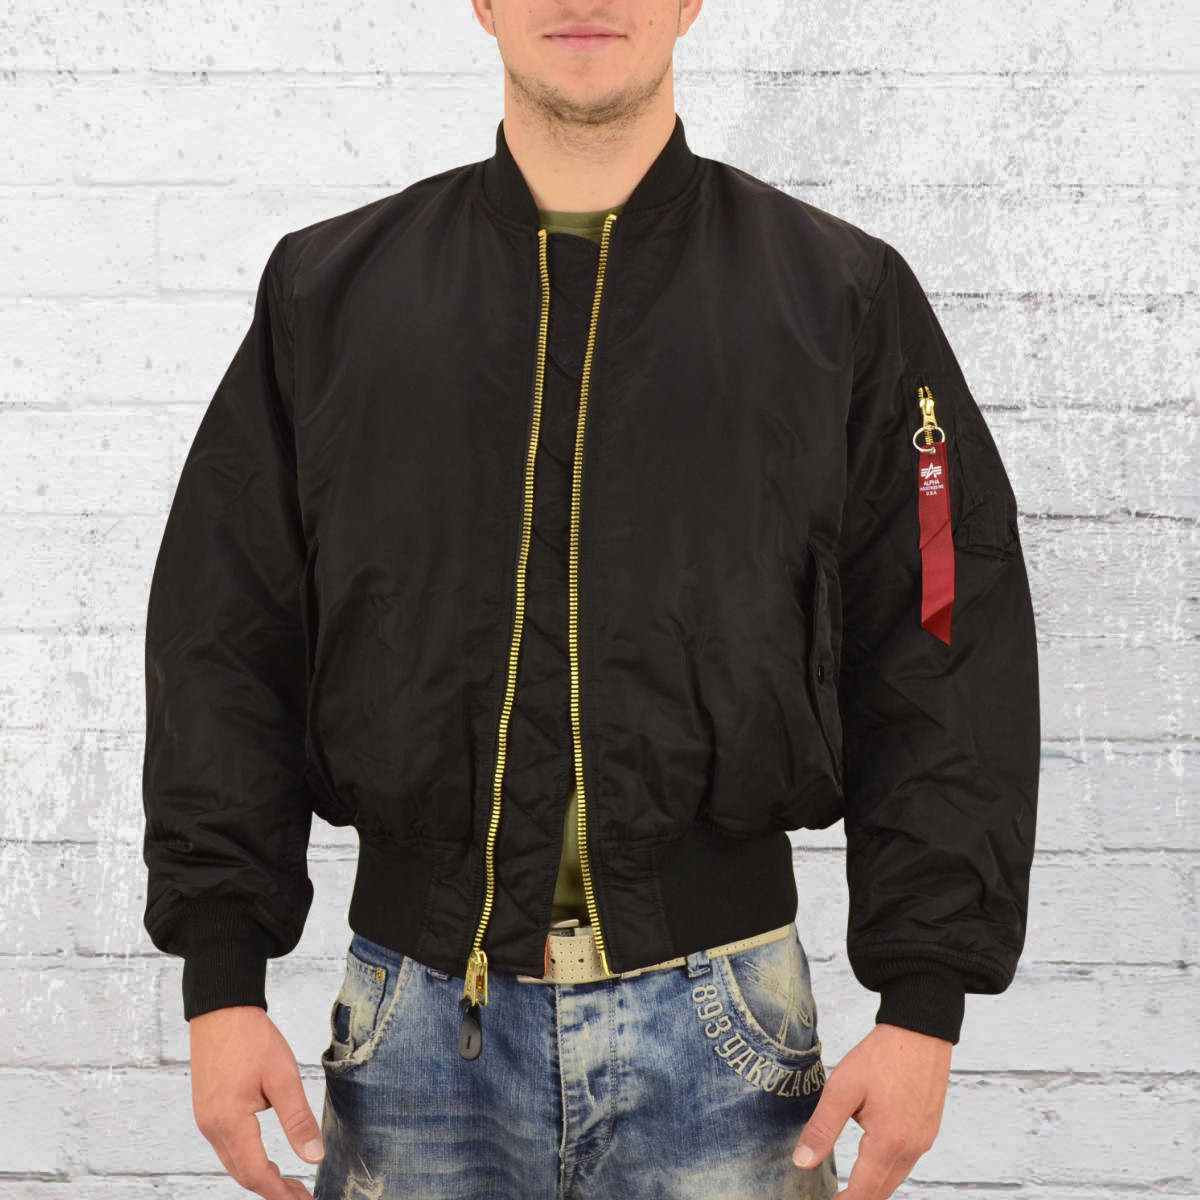 separation shoes 208c9 91e54 Order now | Alpha Industries Mens MA1 Bomber Jacket black